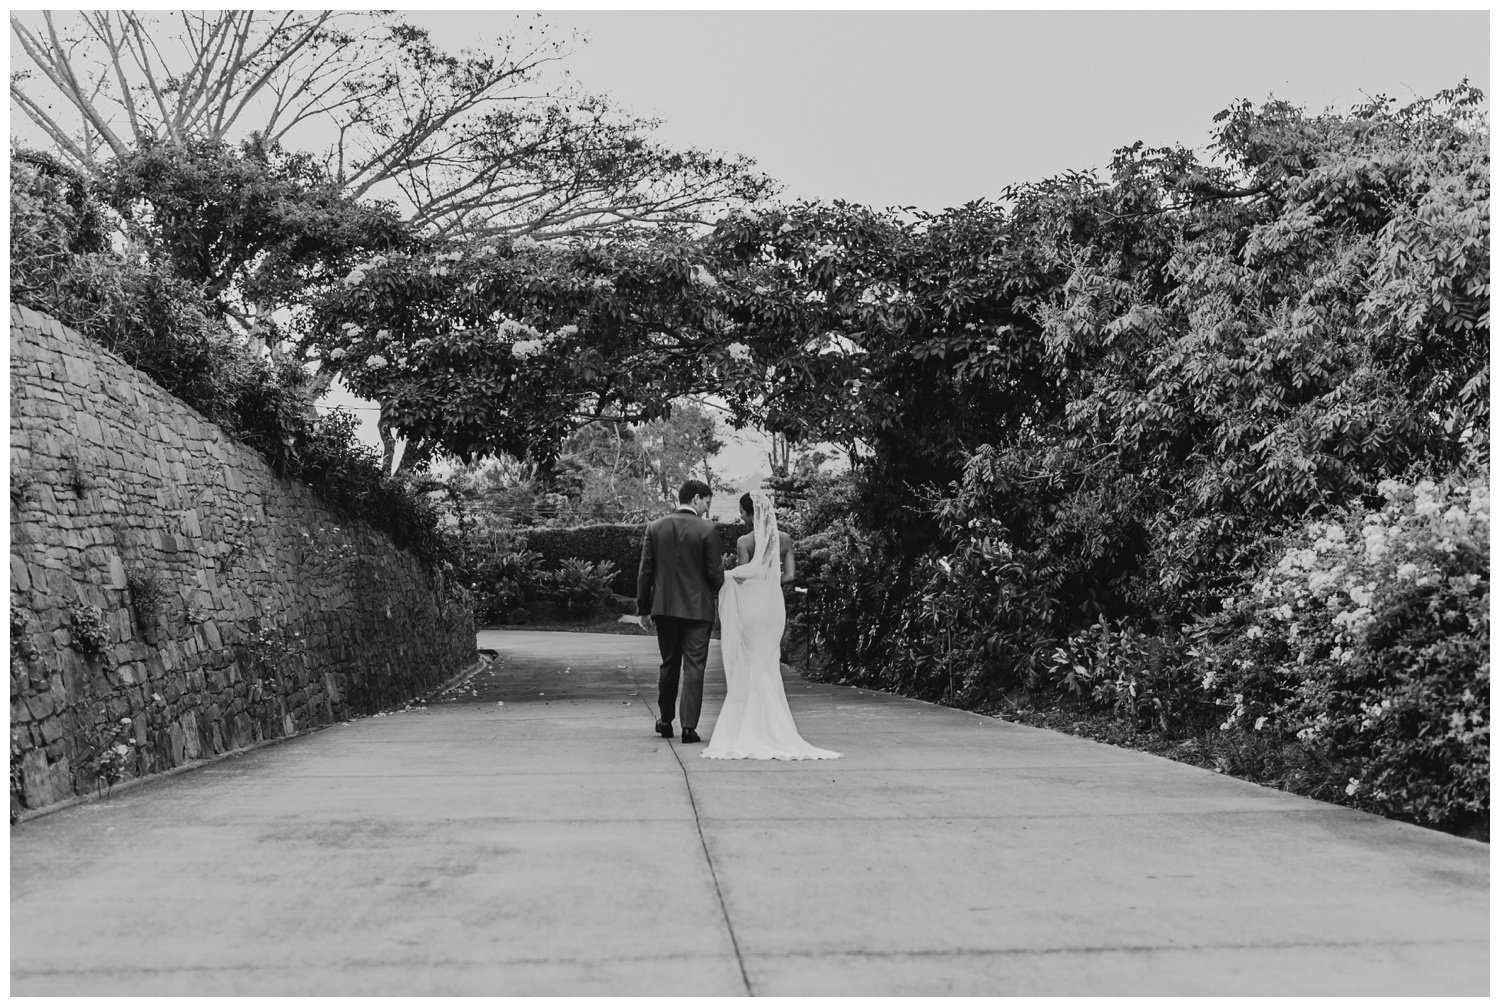 adriana_rivera_miranda_weddings_el_salvador_39.jpg